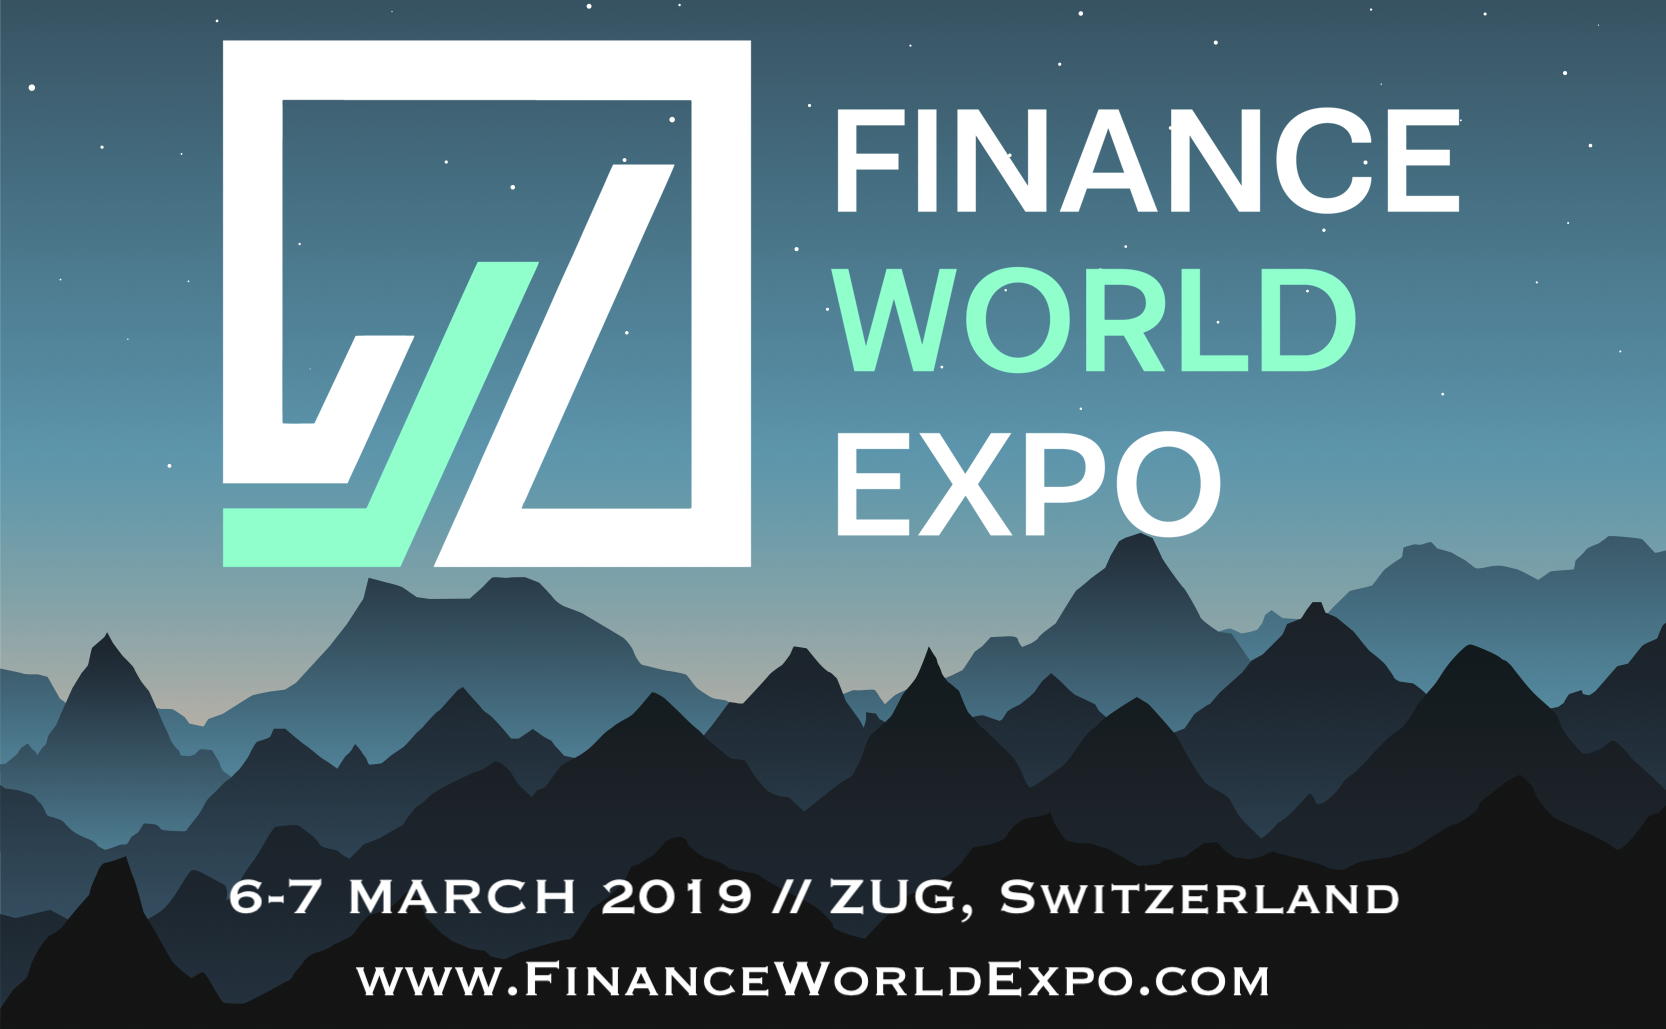 Finance World Expo with an exclusive touch in Zug, Switzerland